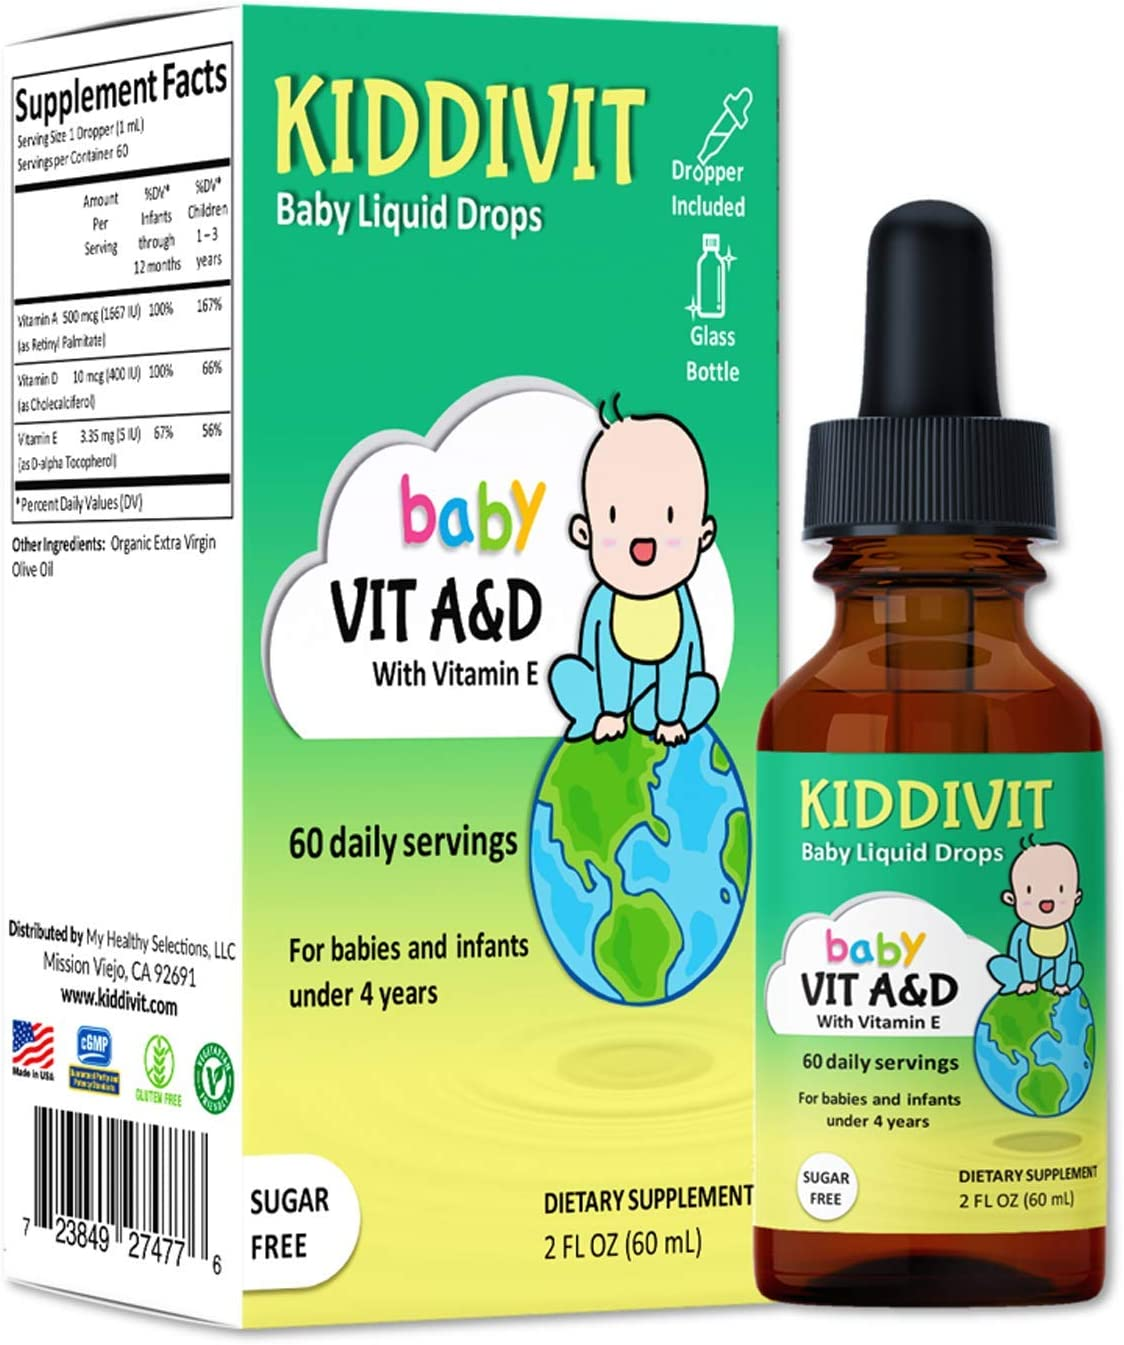 Kiddivit Baby Vitamin A&D Liquid Drops with Vitamin E - 60 Daily Servings, 2 Fl Oz (60 mL) - Dropper Included, Glass Bottle - Sugar Free, Gluten Free, Vegetarian Friendly